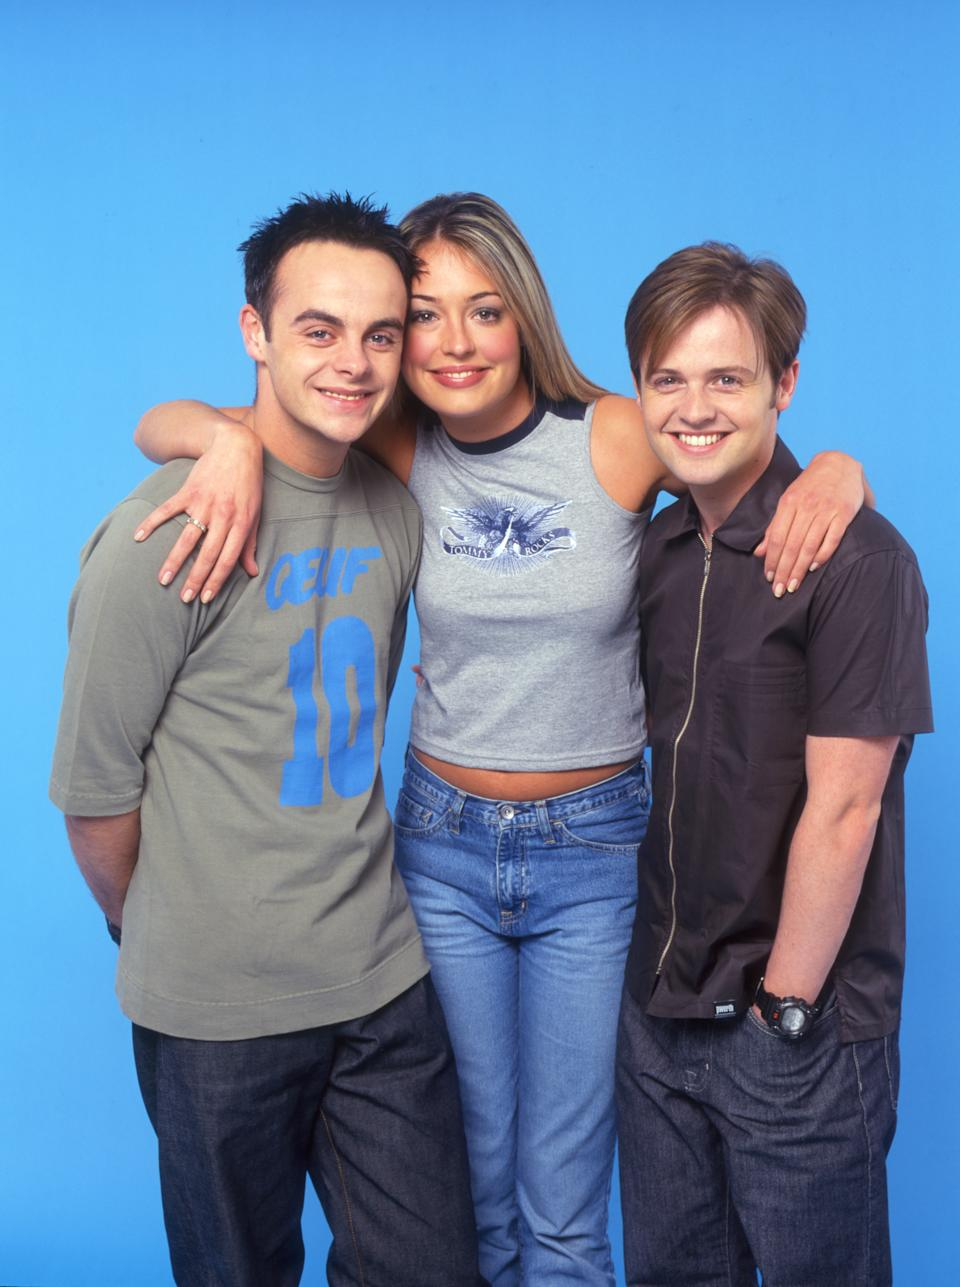 Television presenters Anthony McPartlin, Cat Deeley and Declan Donnelly, co-hosts of Saturday morning television series, 'SMT Live', circa 1998. (Photo by Tim Roney/Getty Images)